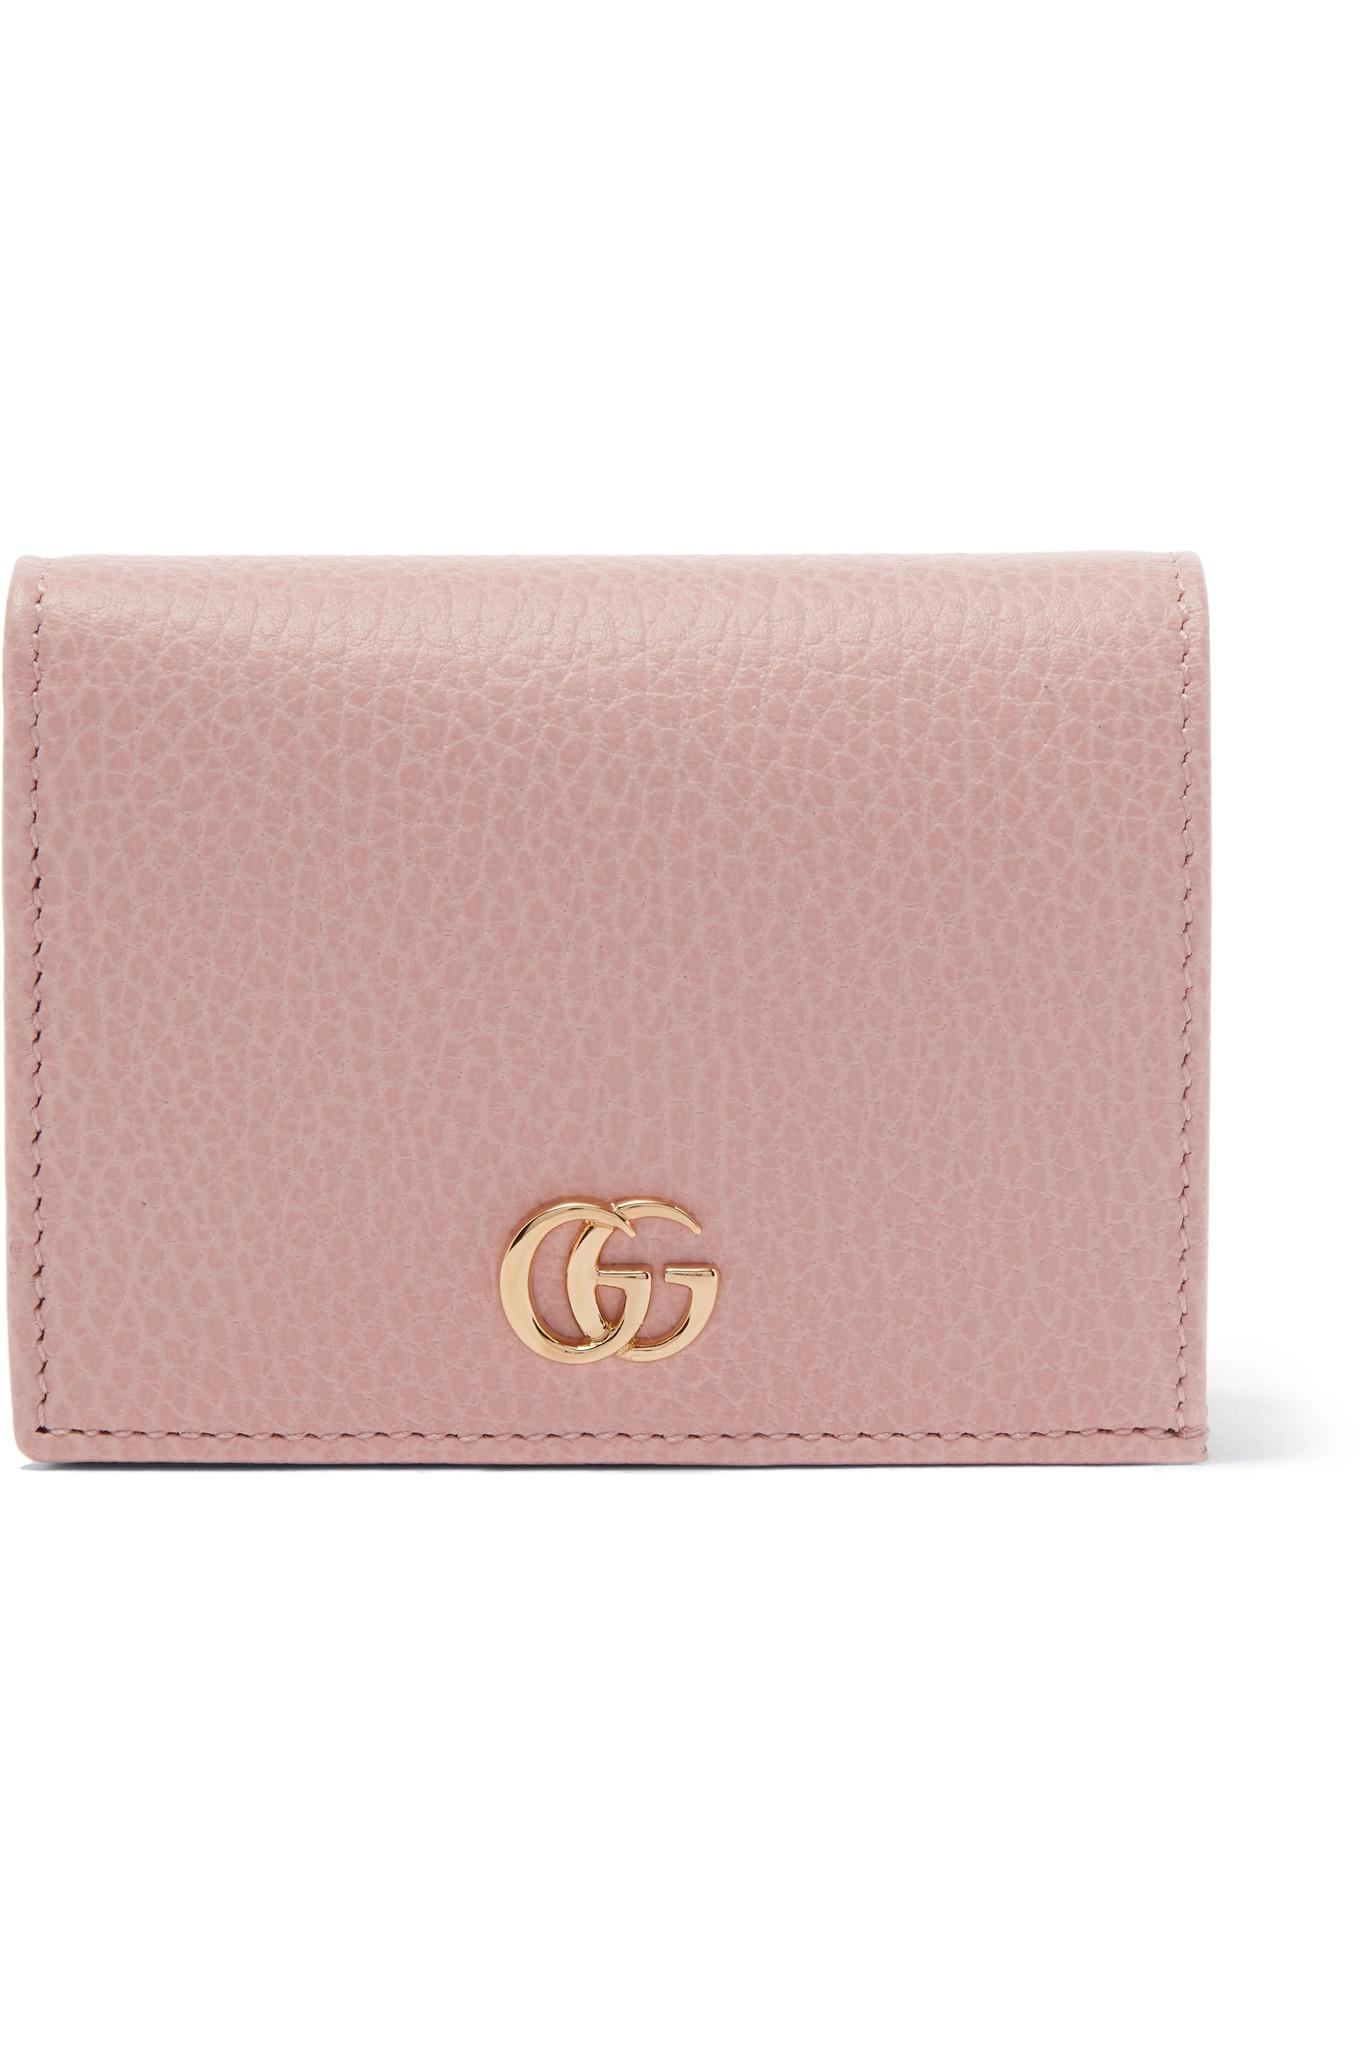 084390864d3dc8 Gucci Marmont Petite Textured-leather Wallet in Pink - Lyst